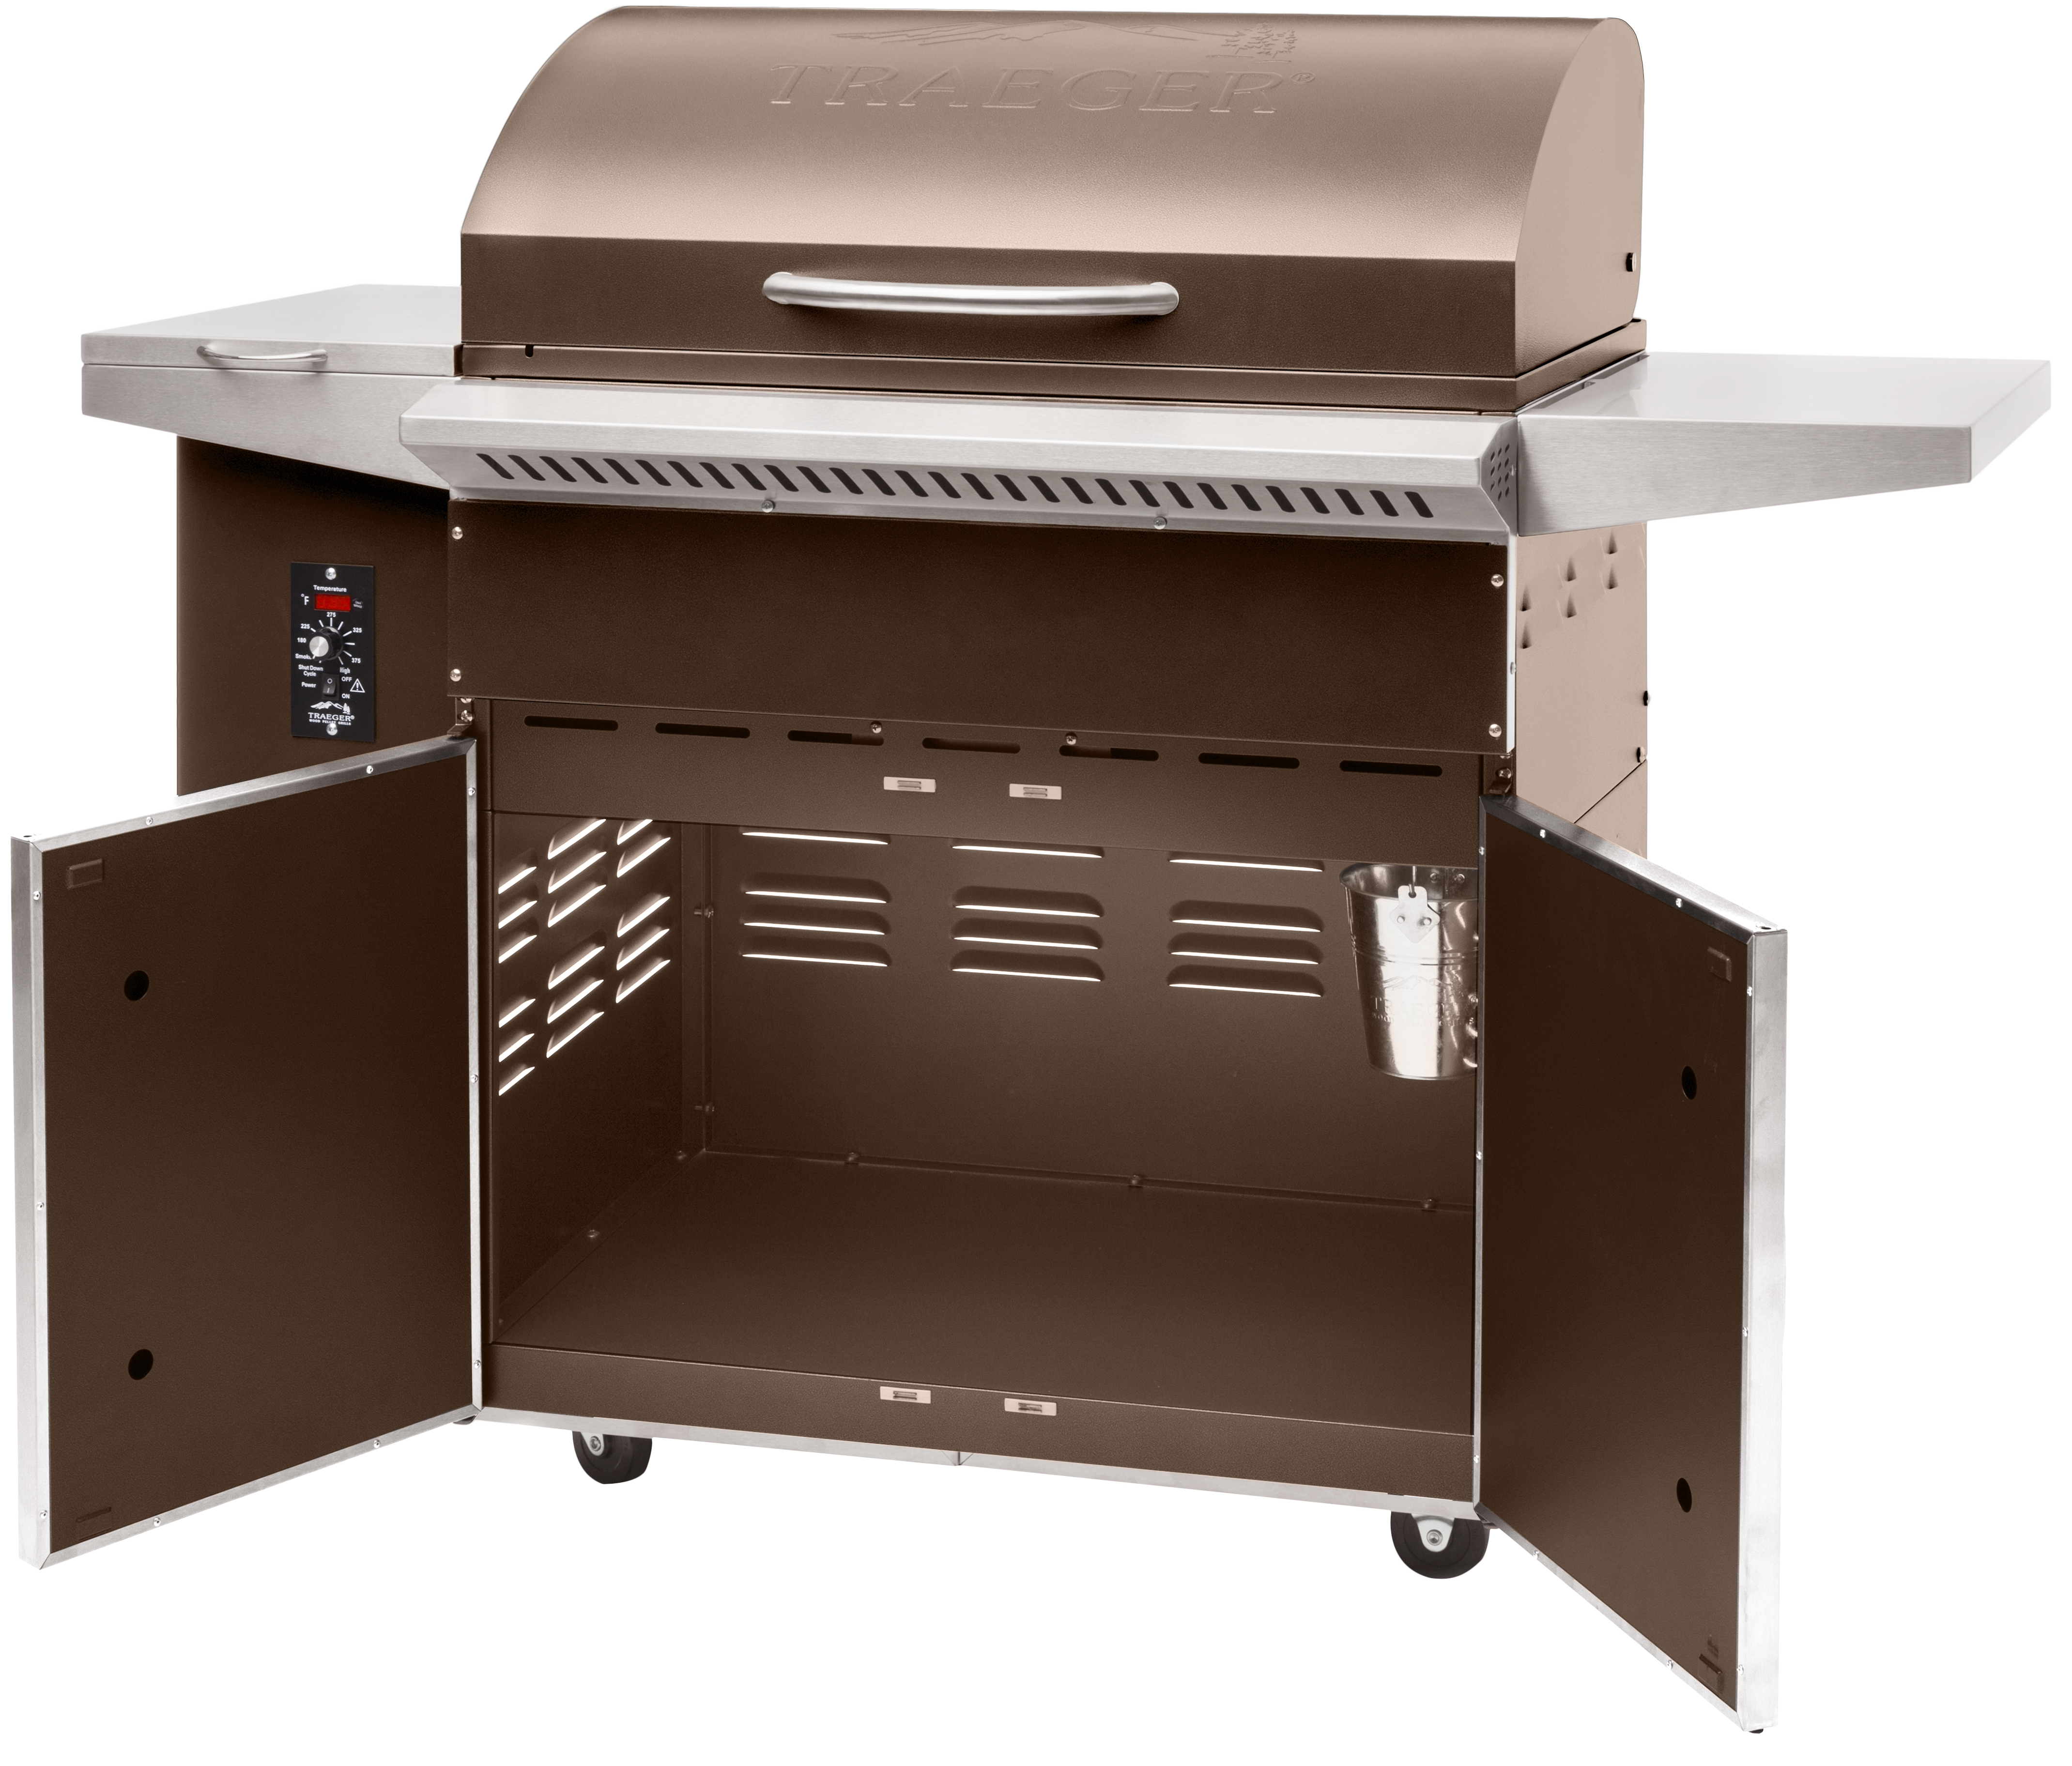 Select Elite Pellet Grill Traeger Wood Fired Grills -  select outdoor kitchens